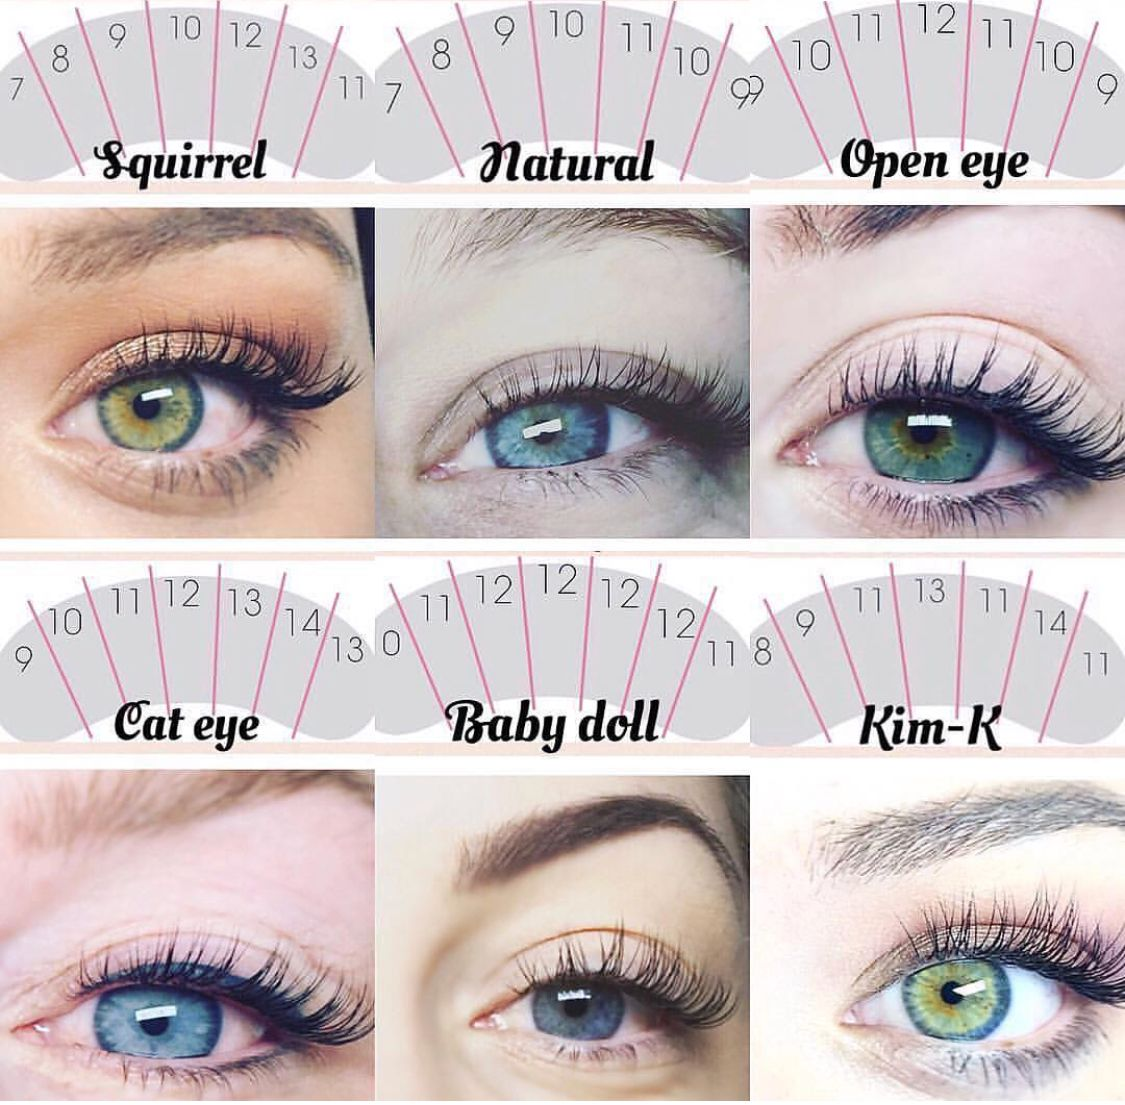 93132676b0d individual eyelash extensions,Faux mink eyelashes,volume lash  extensions,soft mink lashes,silk eyelashes for makeup faux cilios